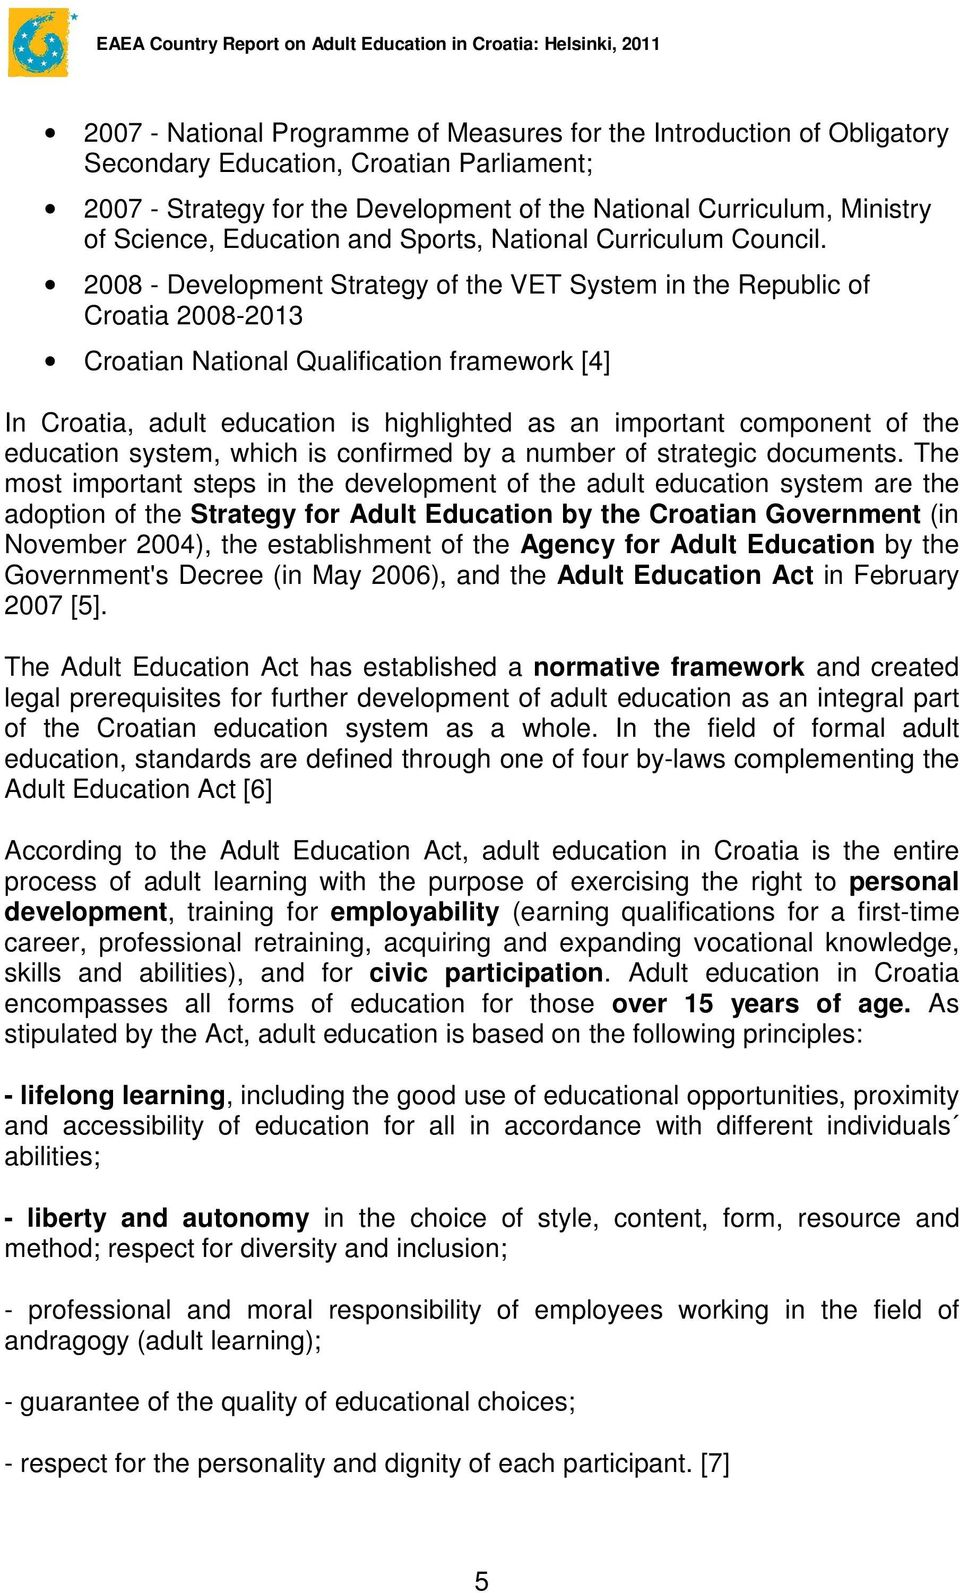 2008 - Development Strategy of the VET System in the Republic of Croatia 2008-2013 Croatian National Qualification framework [4] In Croatia, adult education is highlighted as an important component